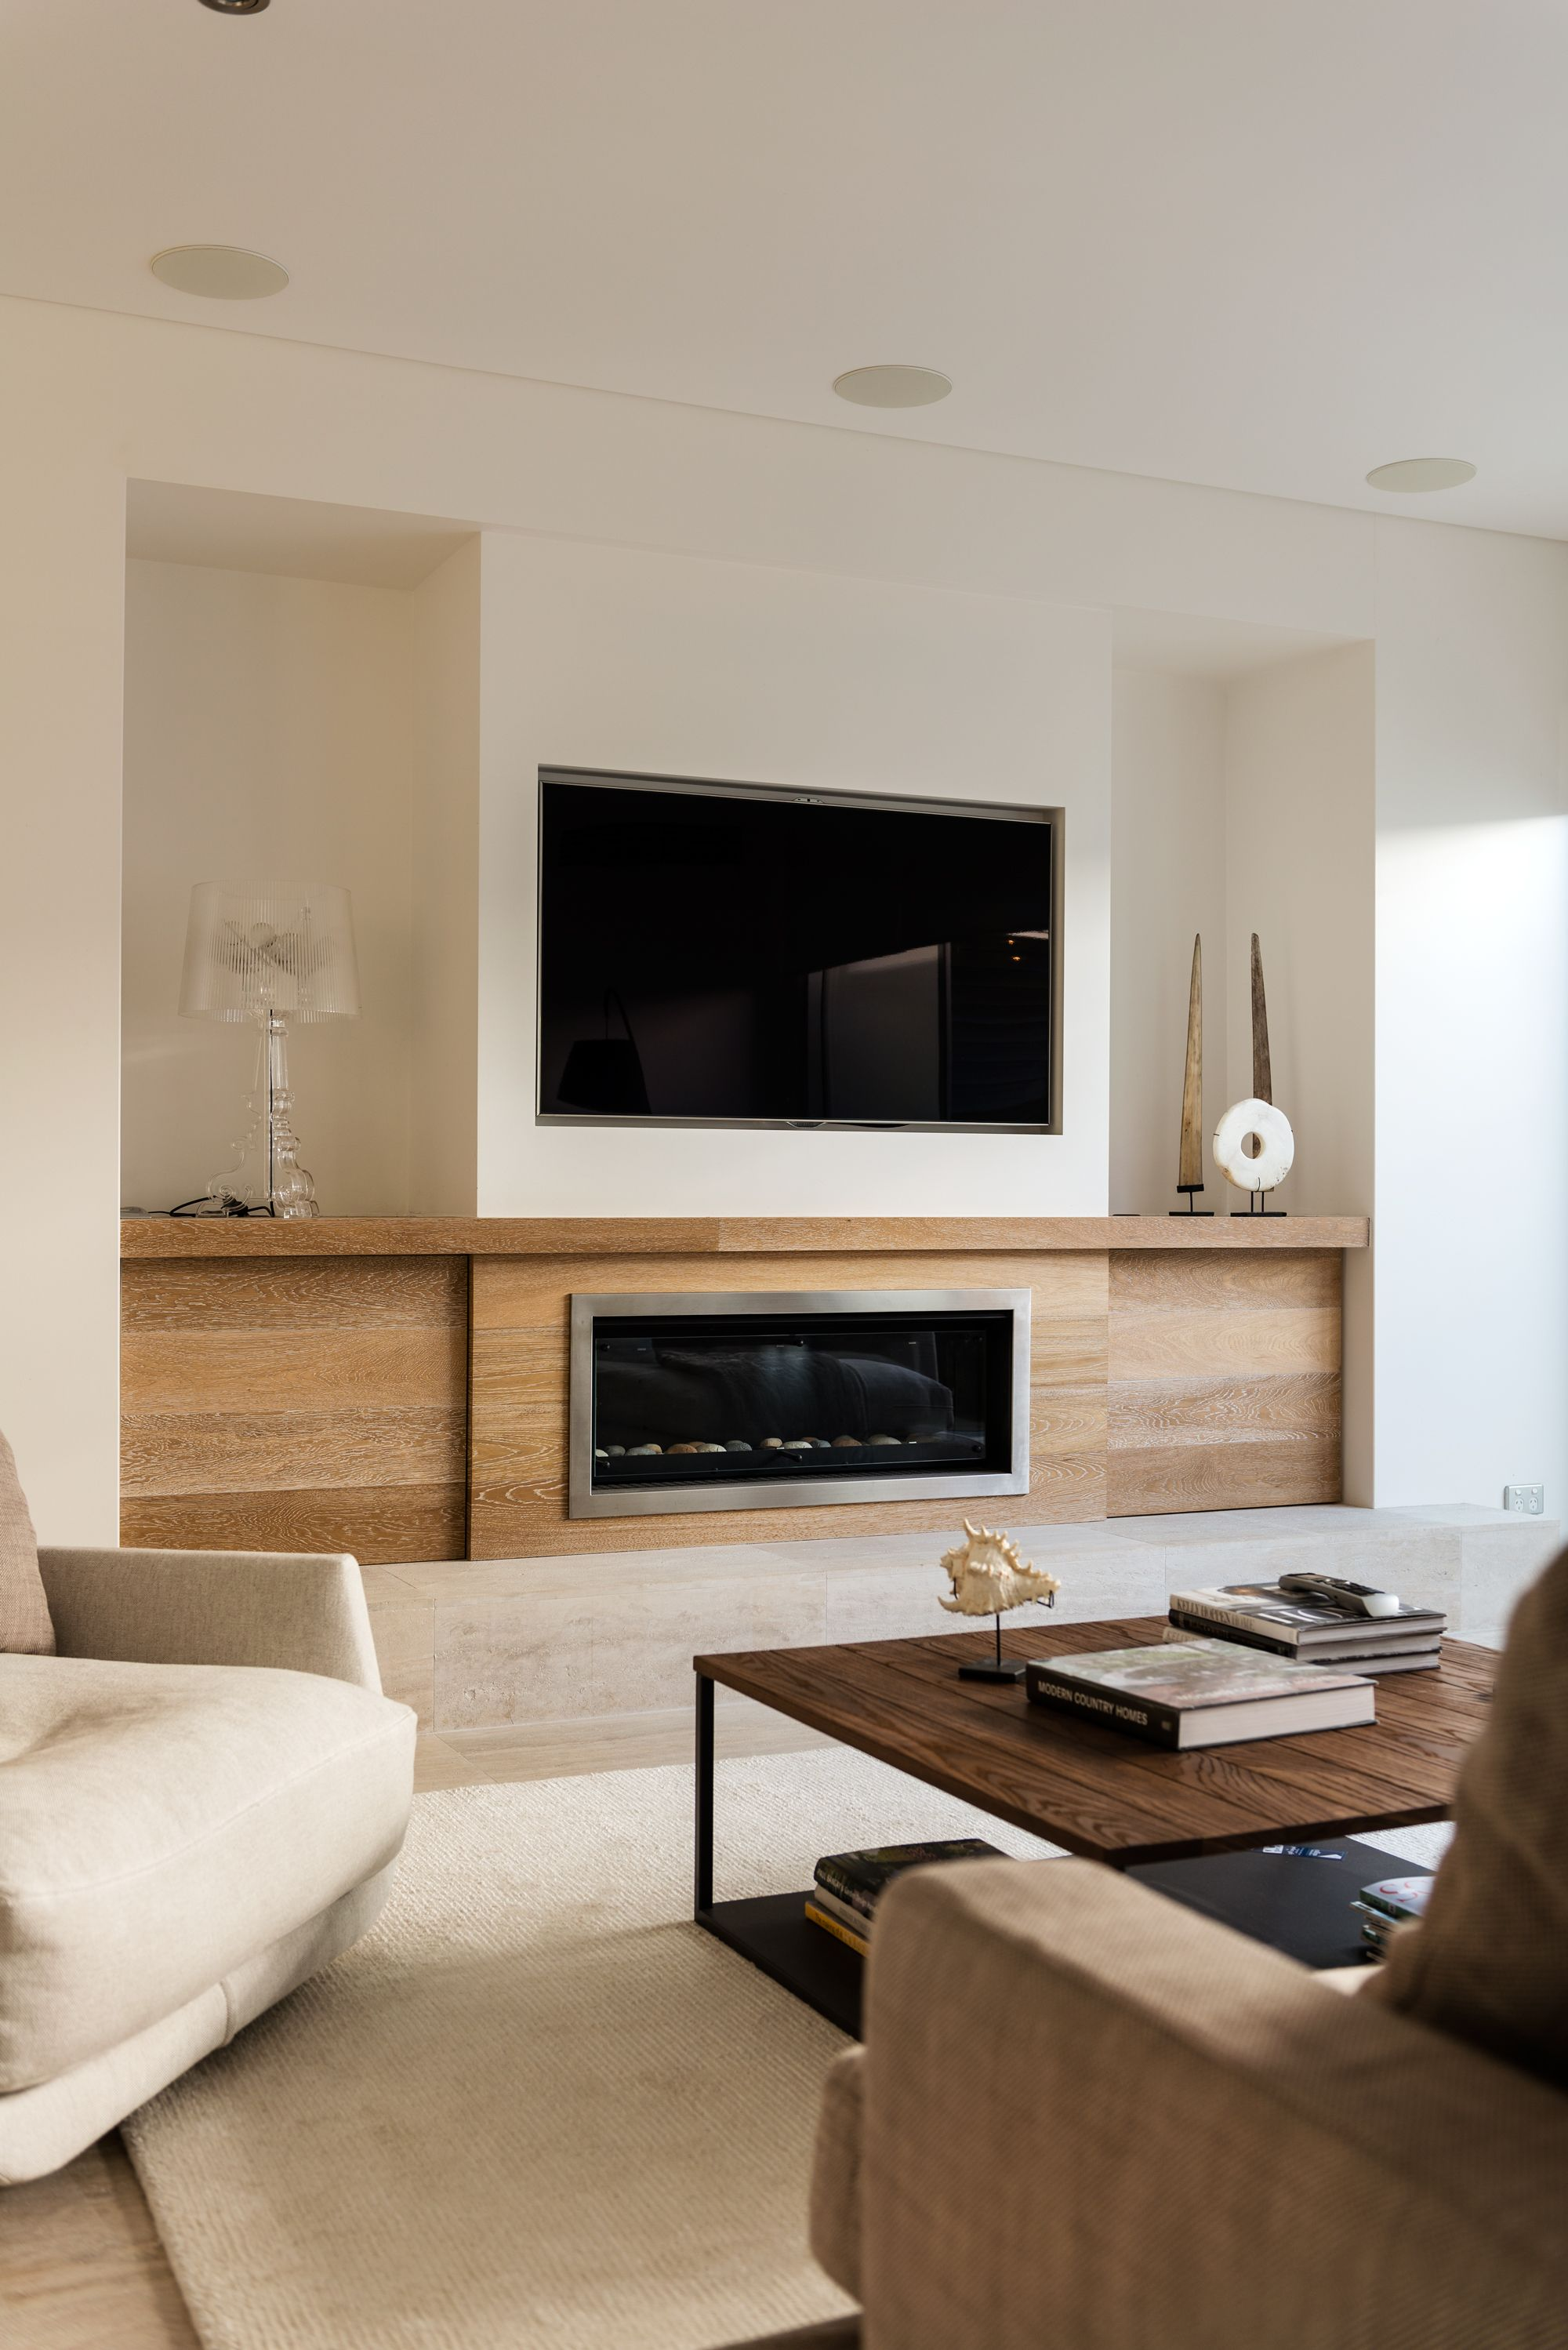 Built in cabinets contemporary living room lucy and company - Contemporary Fireplace Flat Screen Combination More